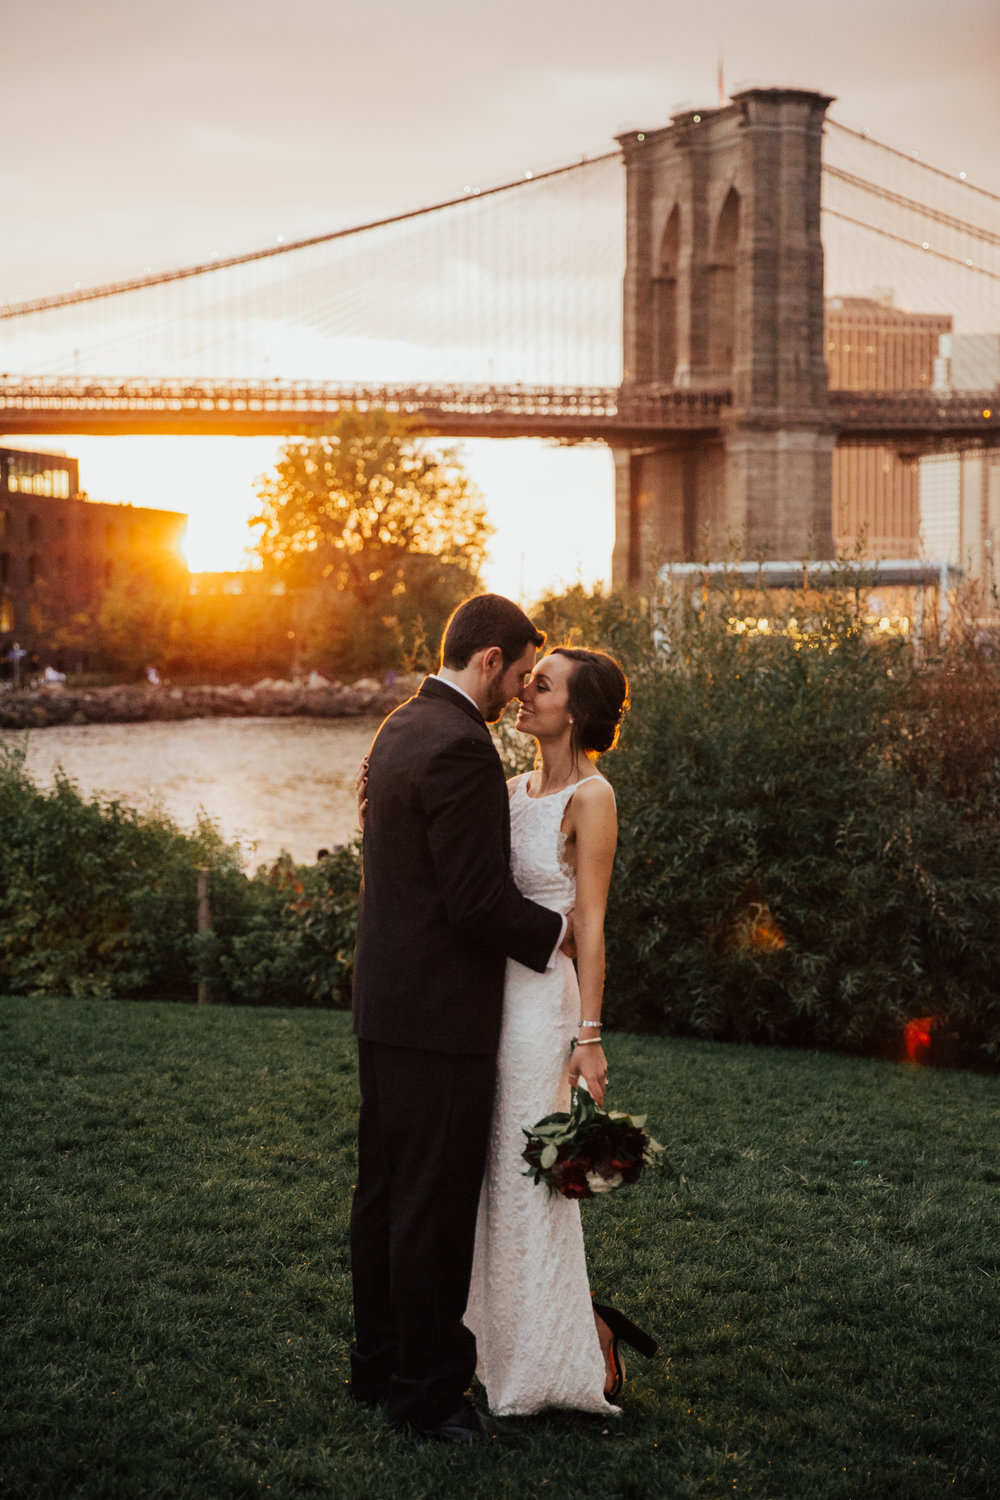 26-bridge-wedding-brooklyn-068.JPG